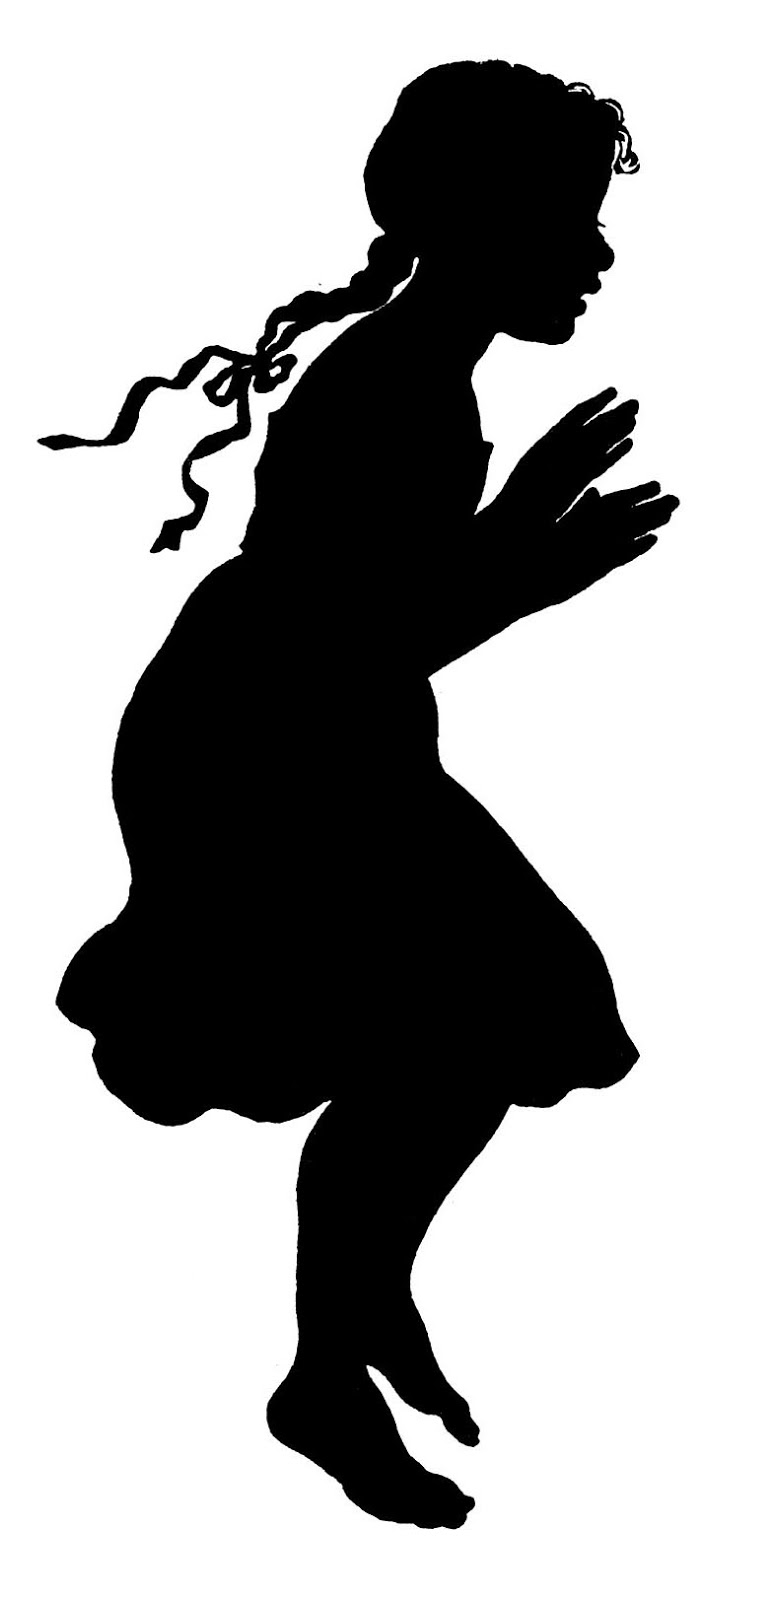 775x1600 Office 2007 Clipart Library Flower Silhouette